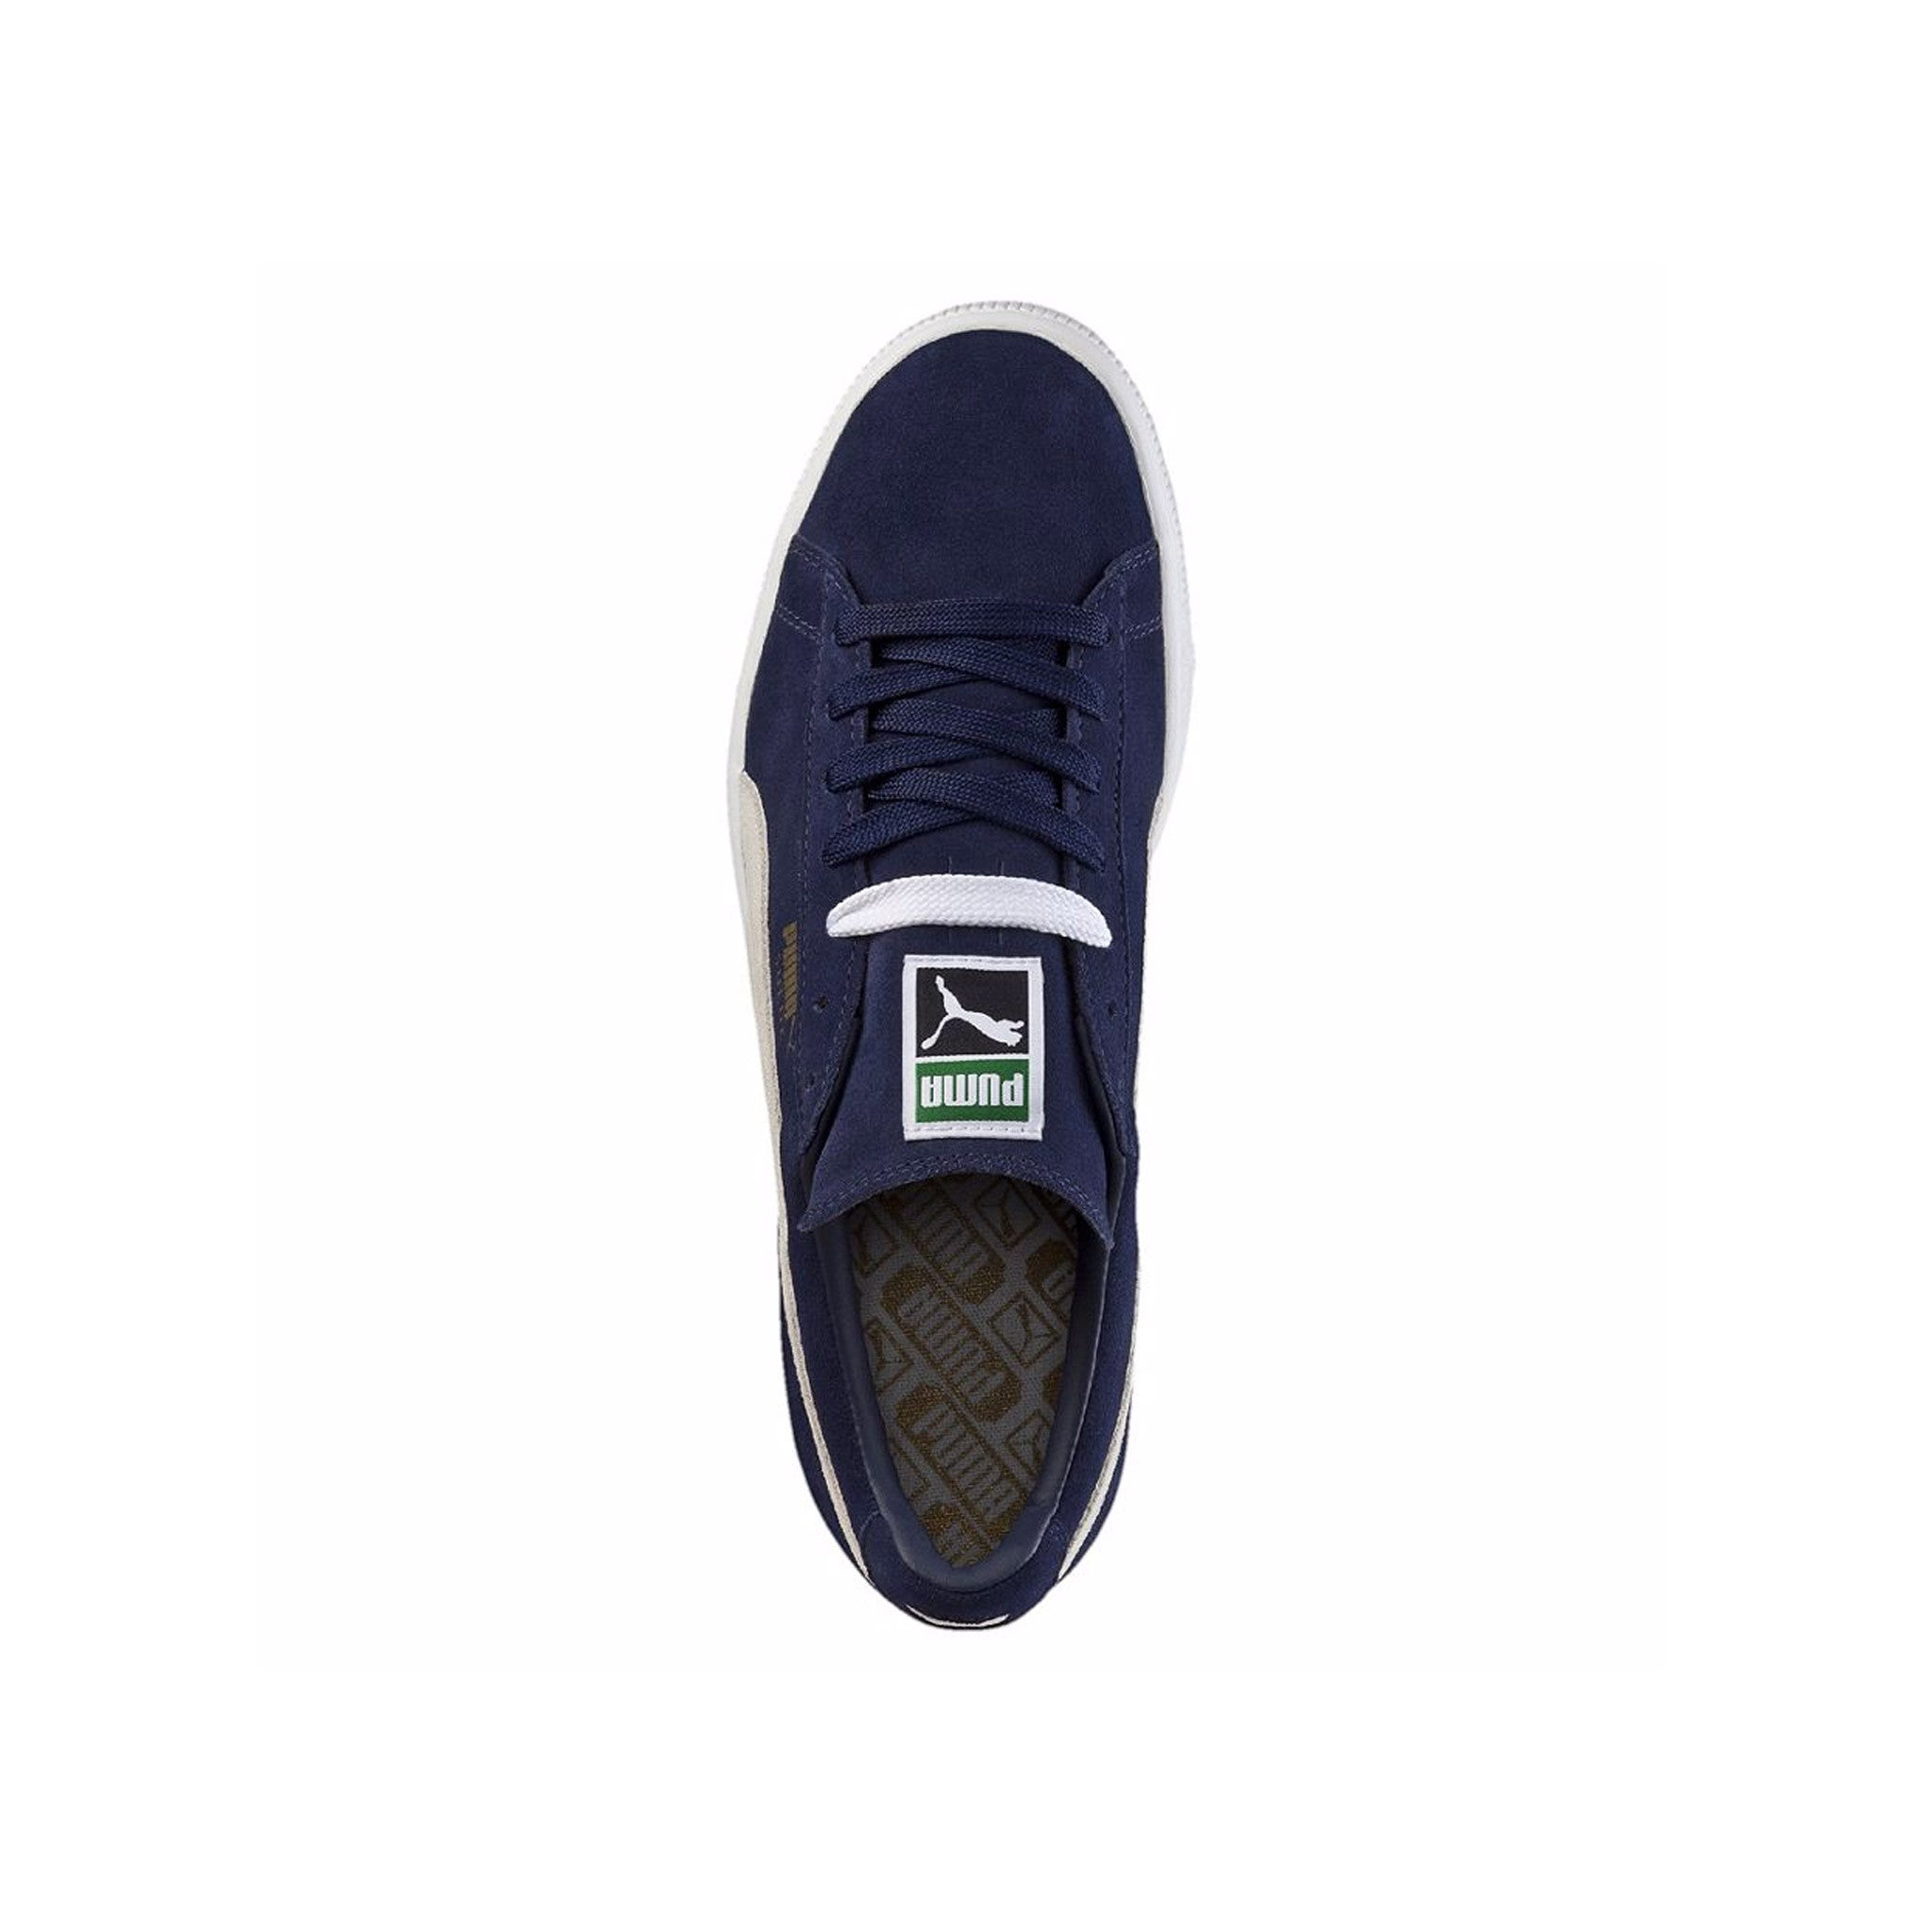 Suede Classic Puma Sneakers Peacoat Top View